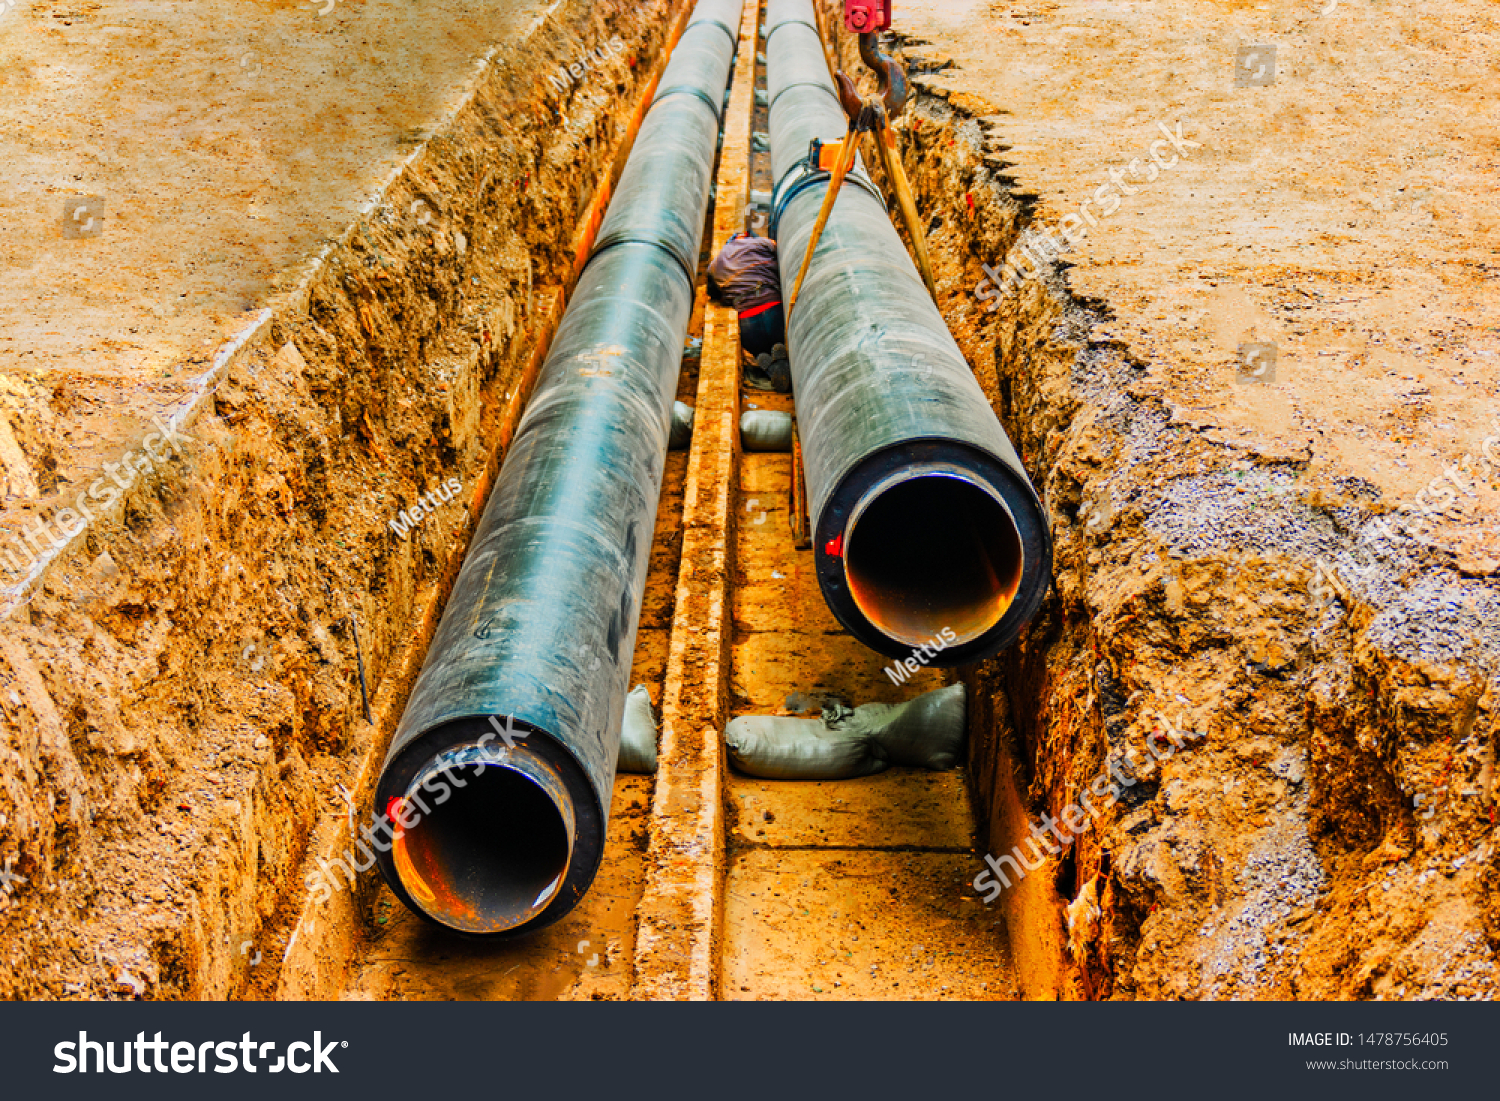 Underground pipe being fixed in trench. Man do a circular welding in trench